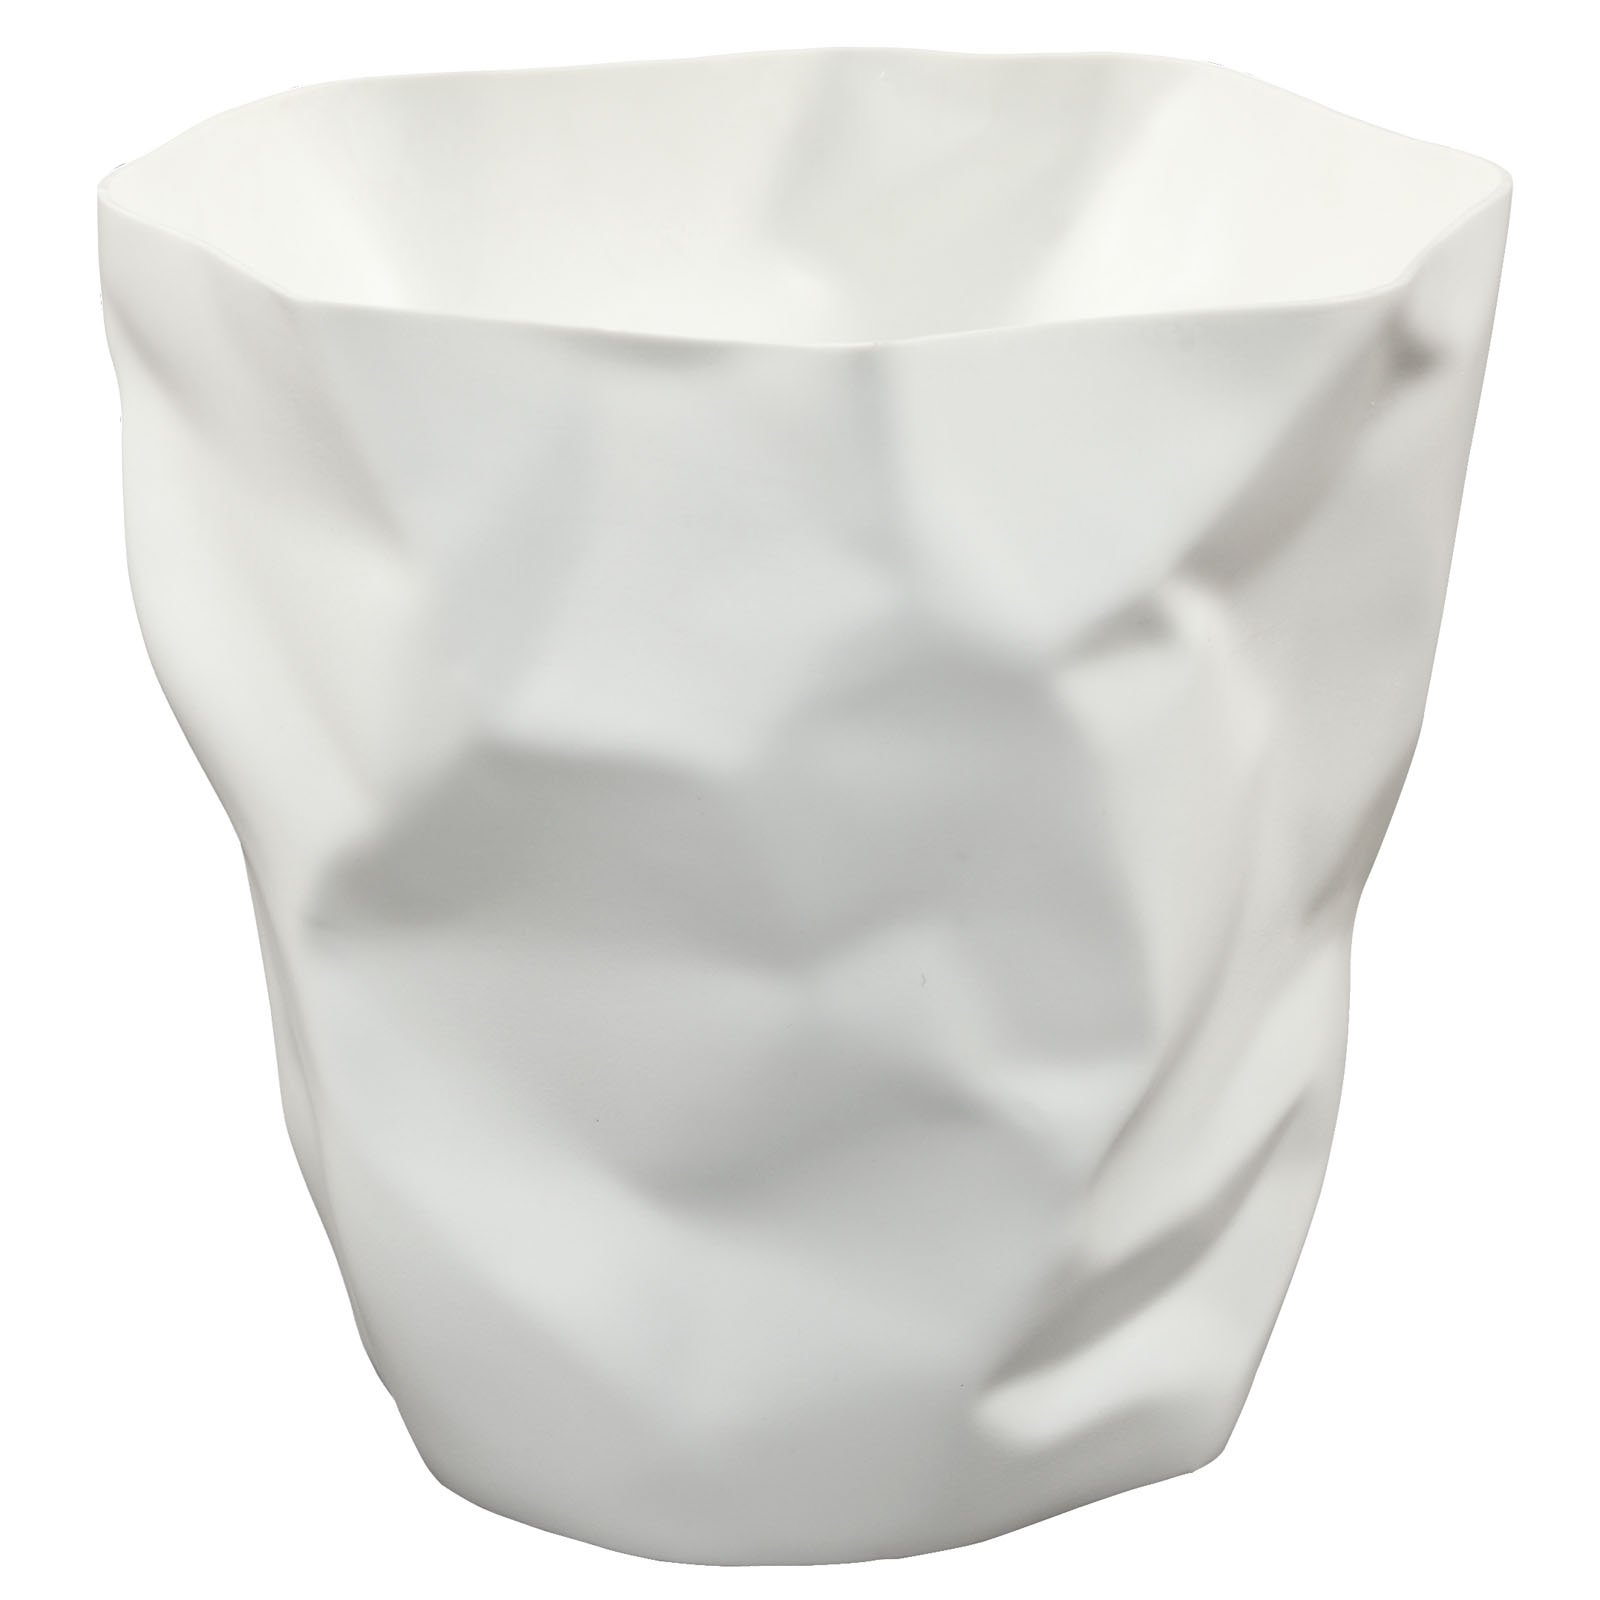 Modern Contemporary Trash Bin White by America Luxury - Accessories (Image #1)